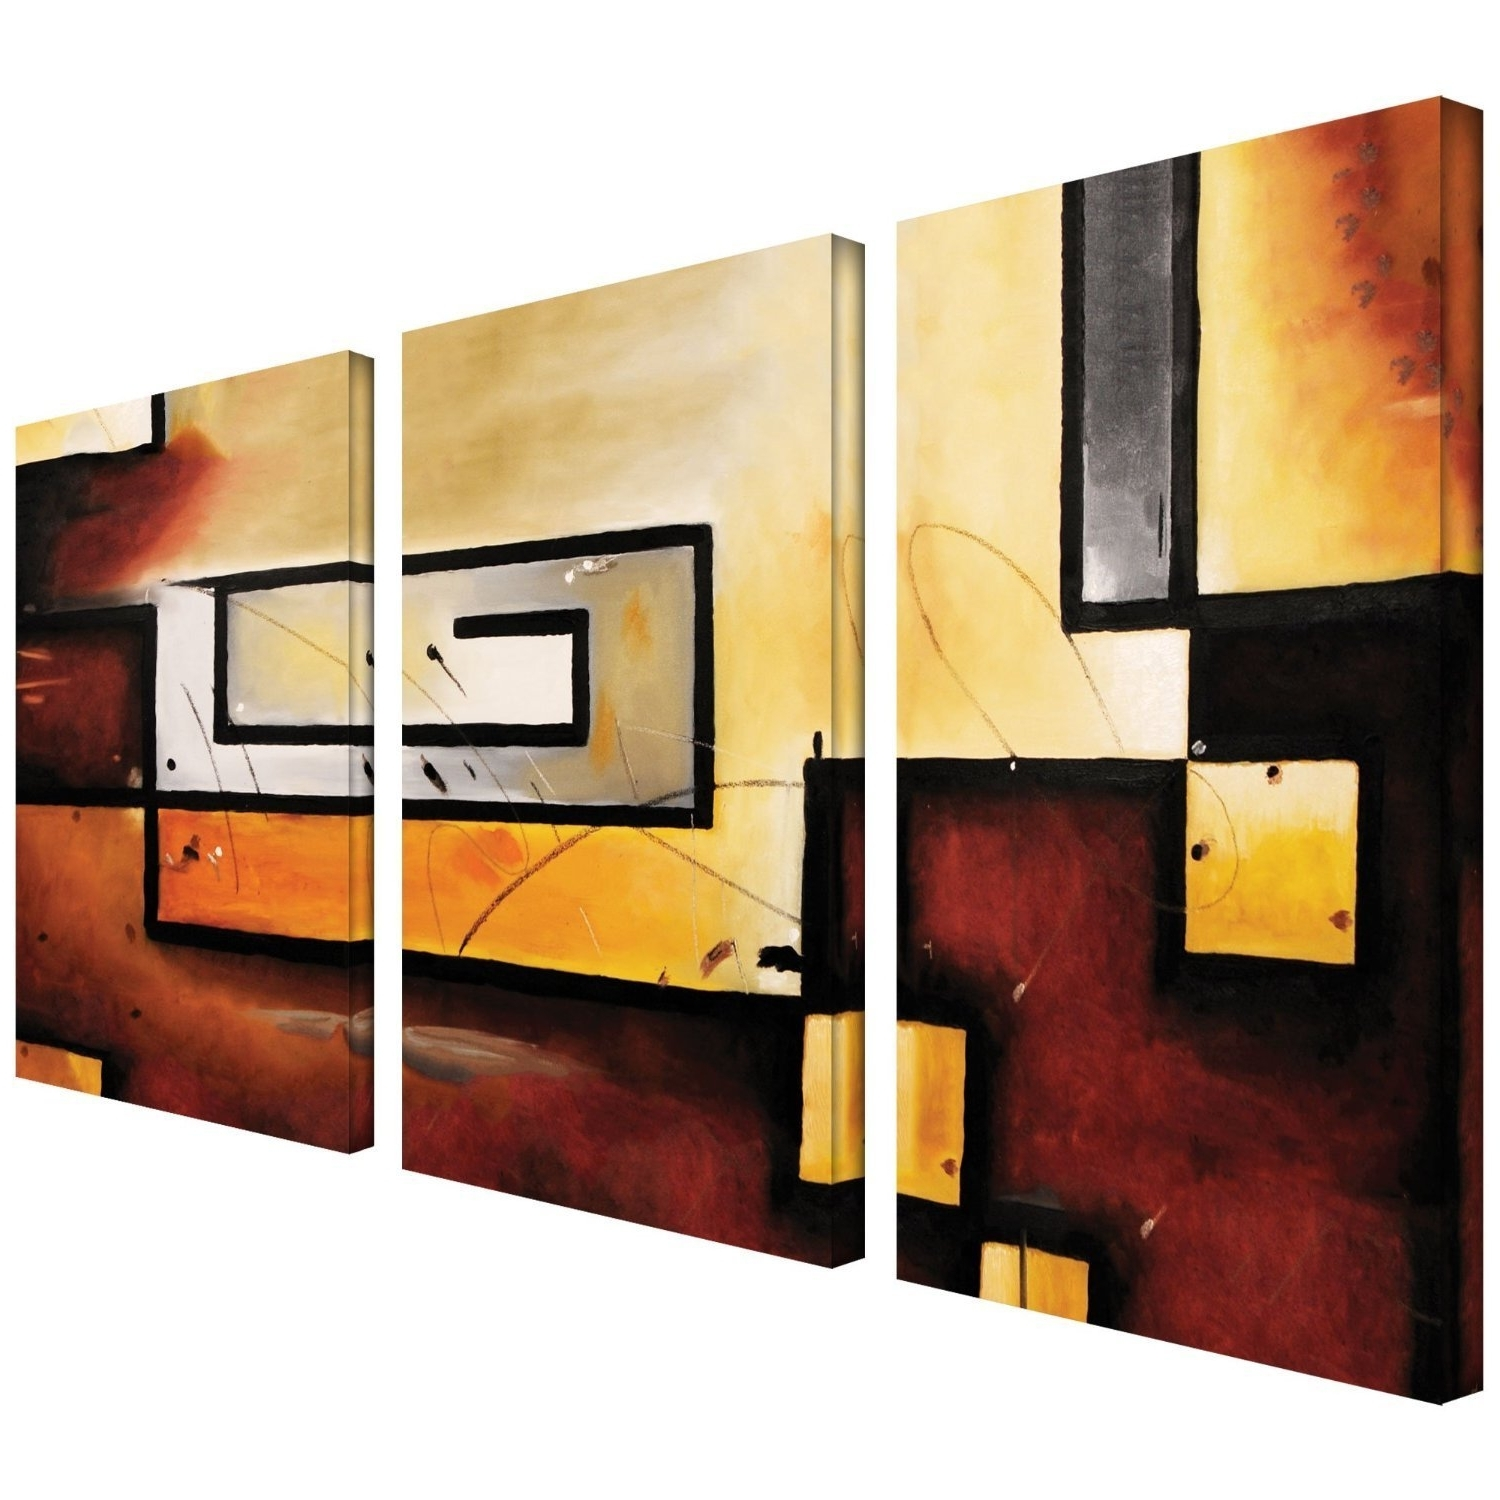 Image Gallery of Contemporary Abstract Wall Art (View 12 of 15 Photos)